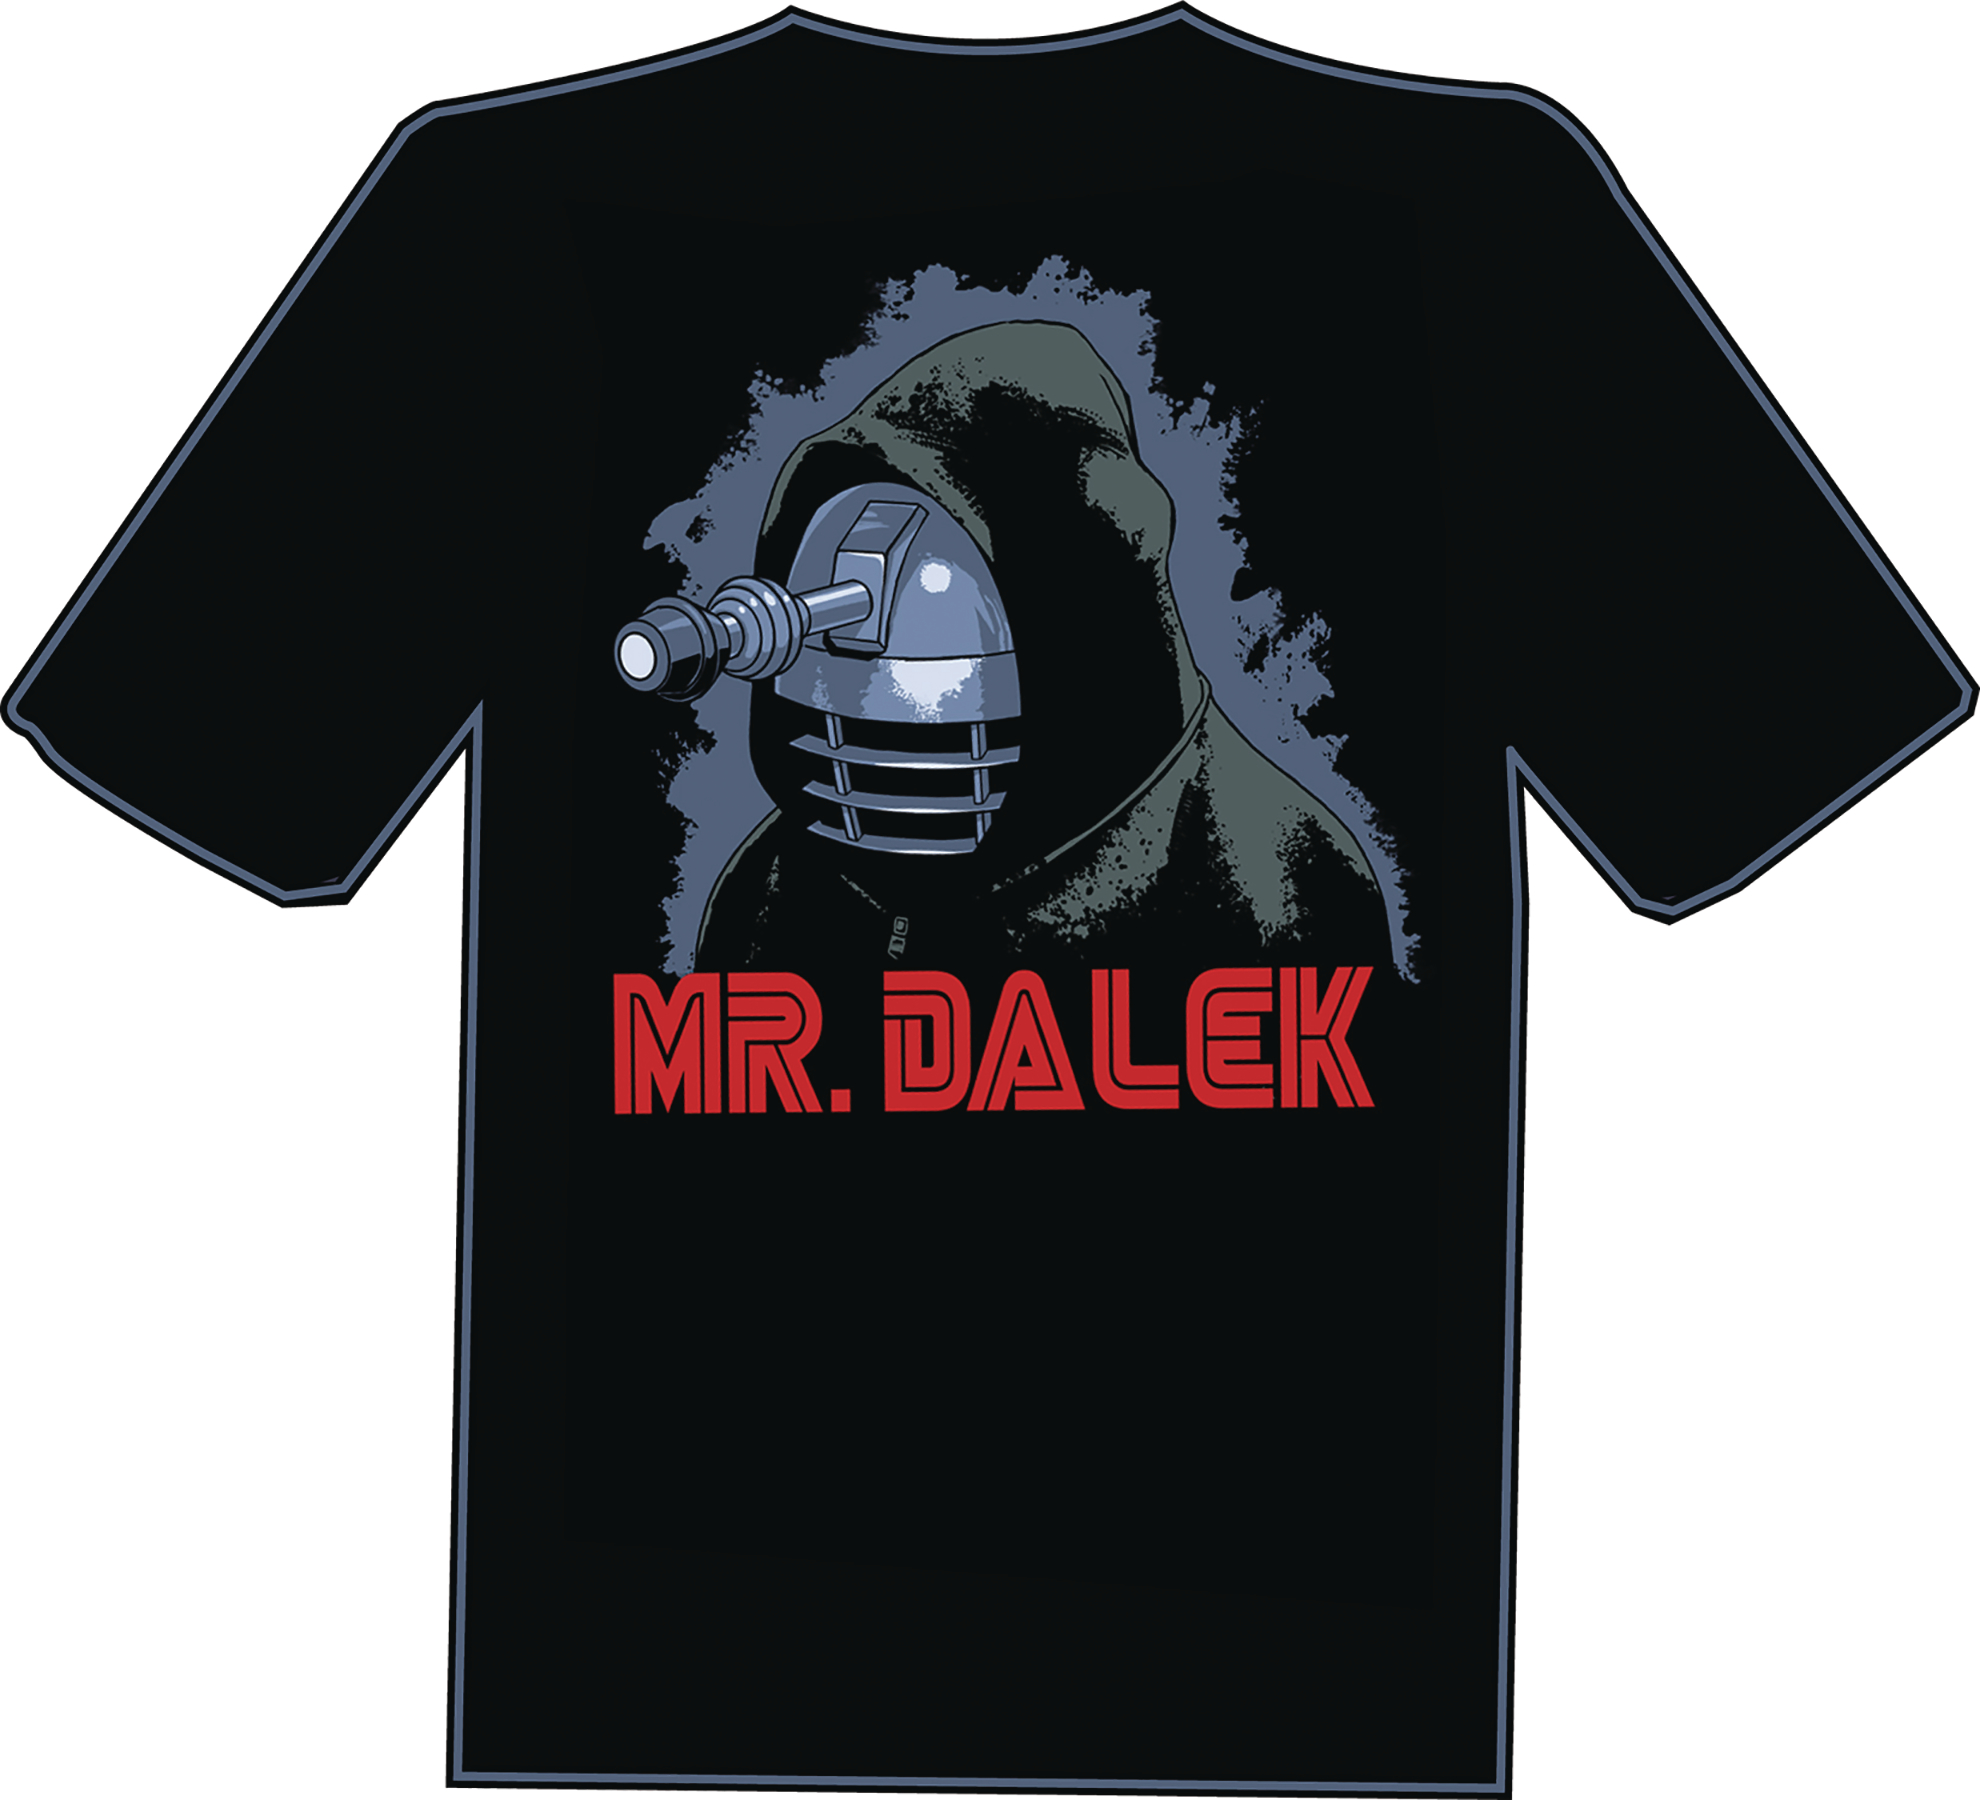 Mr. Dalek T-Shirt